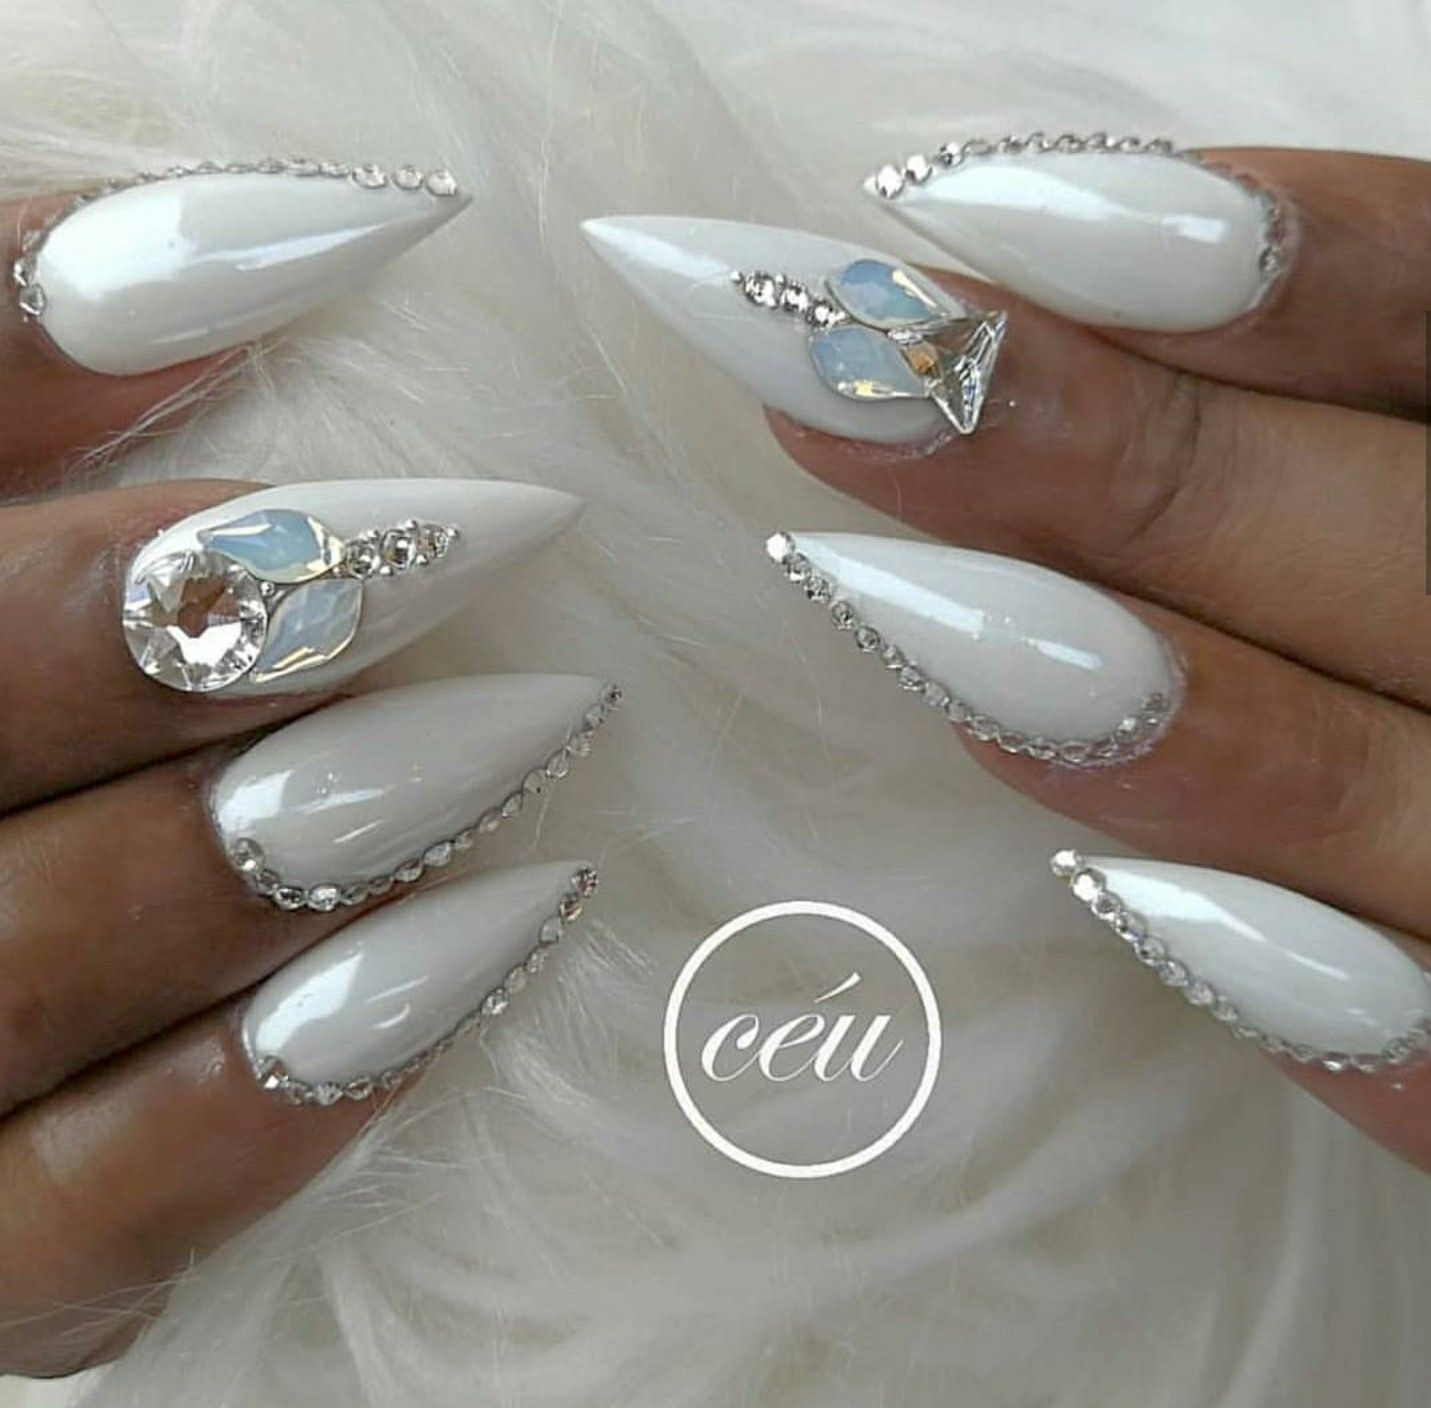 Stiletto Nails Pearl White Nails Nails With Rhinestones Acrylic Nails White Stiletto Nails Nails Design With Rhinestones Stiletto Nails